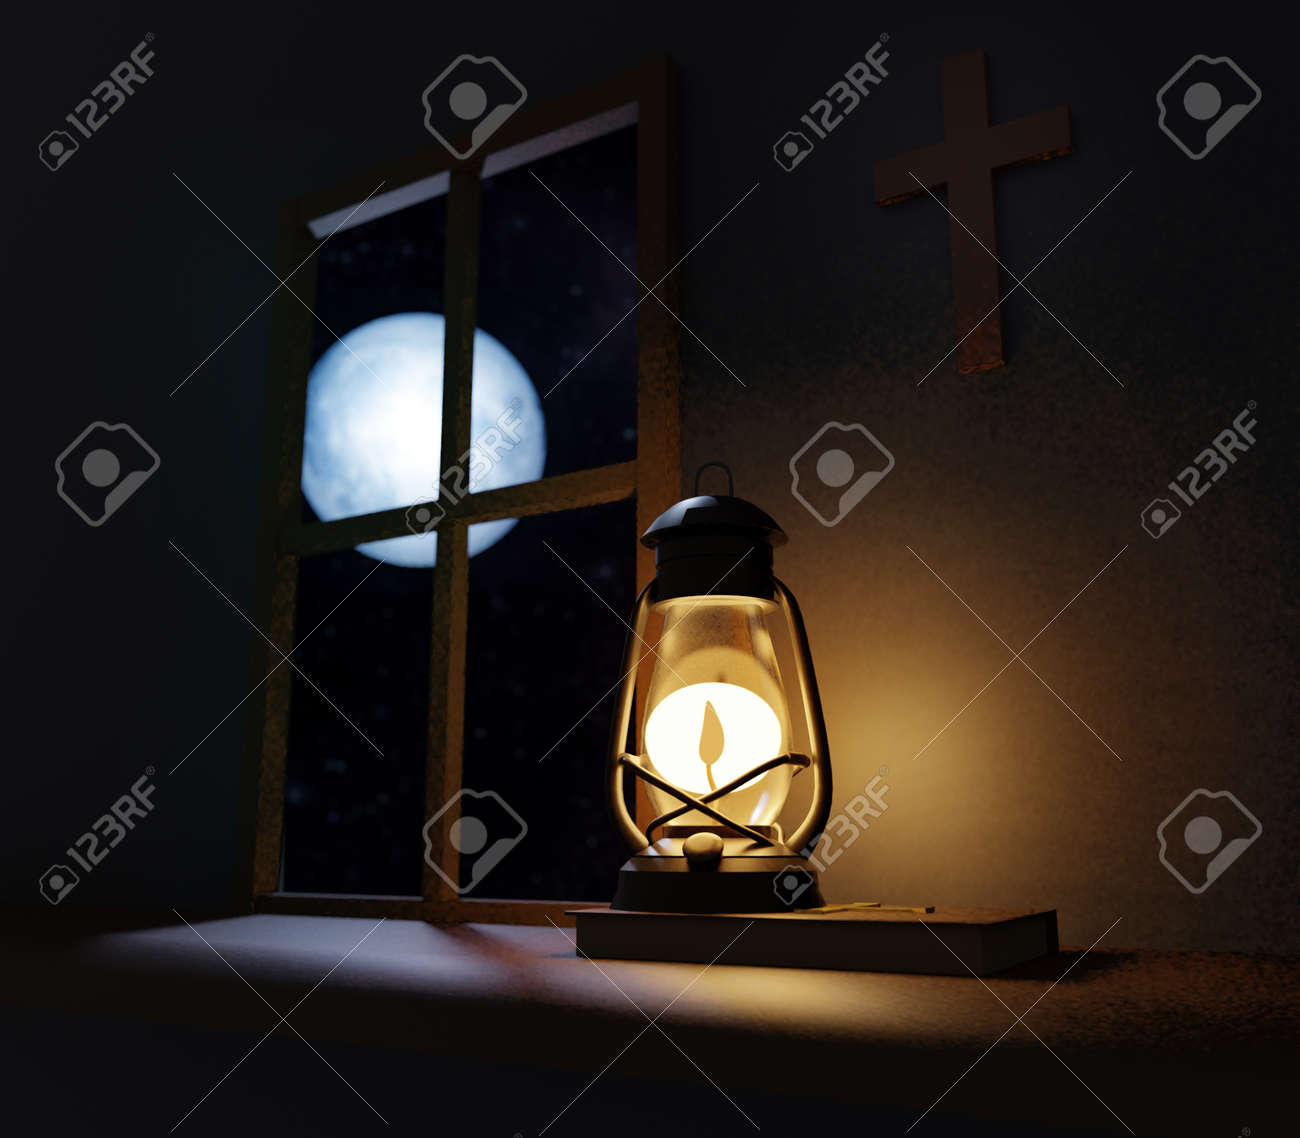 Old fashioned kerosene lantern style oil lamp burning in night with a soft glow in old church with cross on wall and full moon outside of the window - 171159626